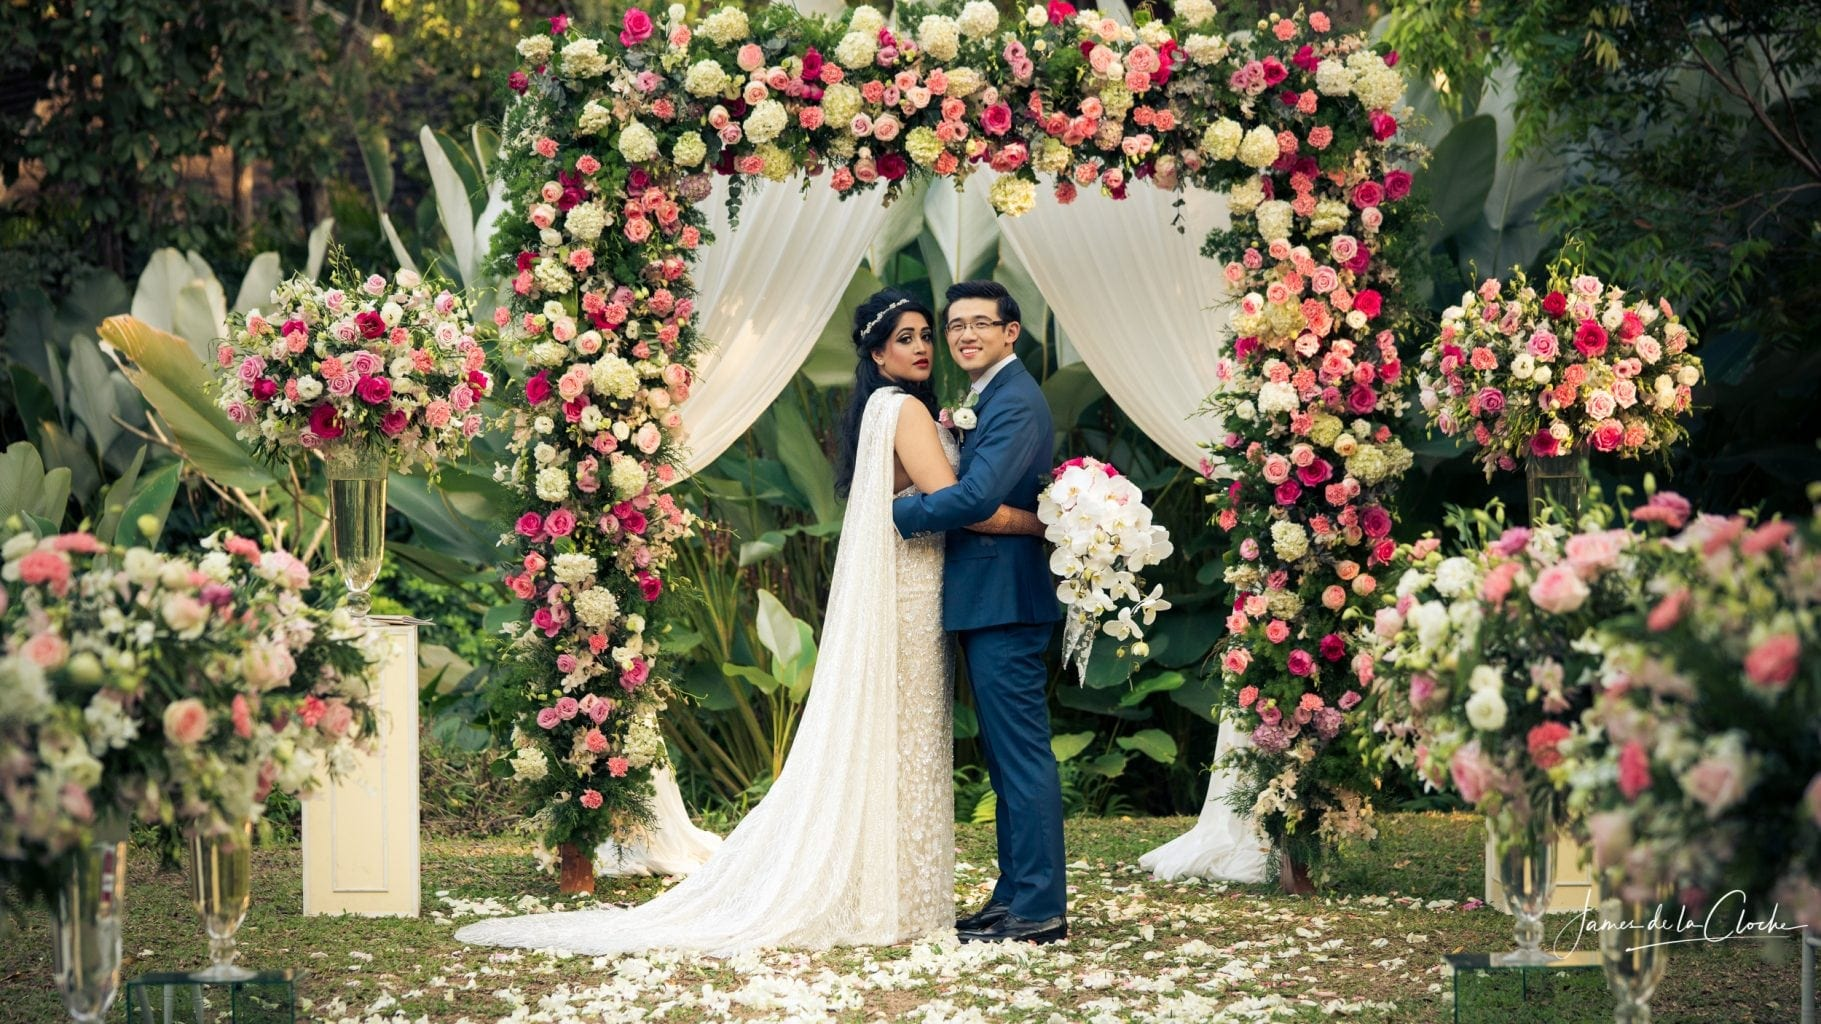 Bride, Groom and a Beautiful Flower Arch